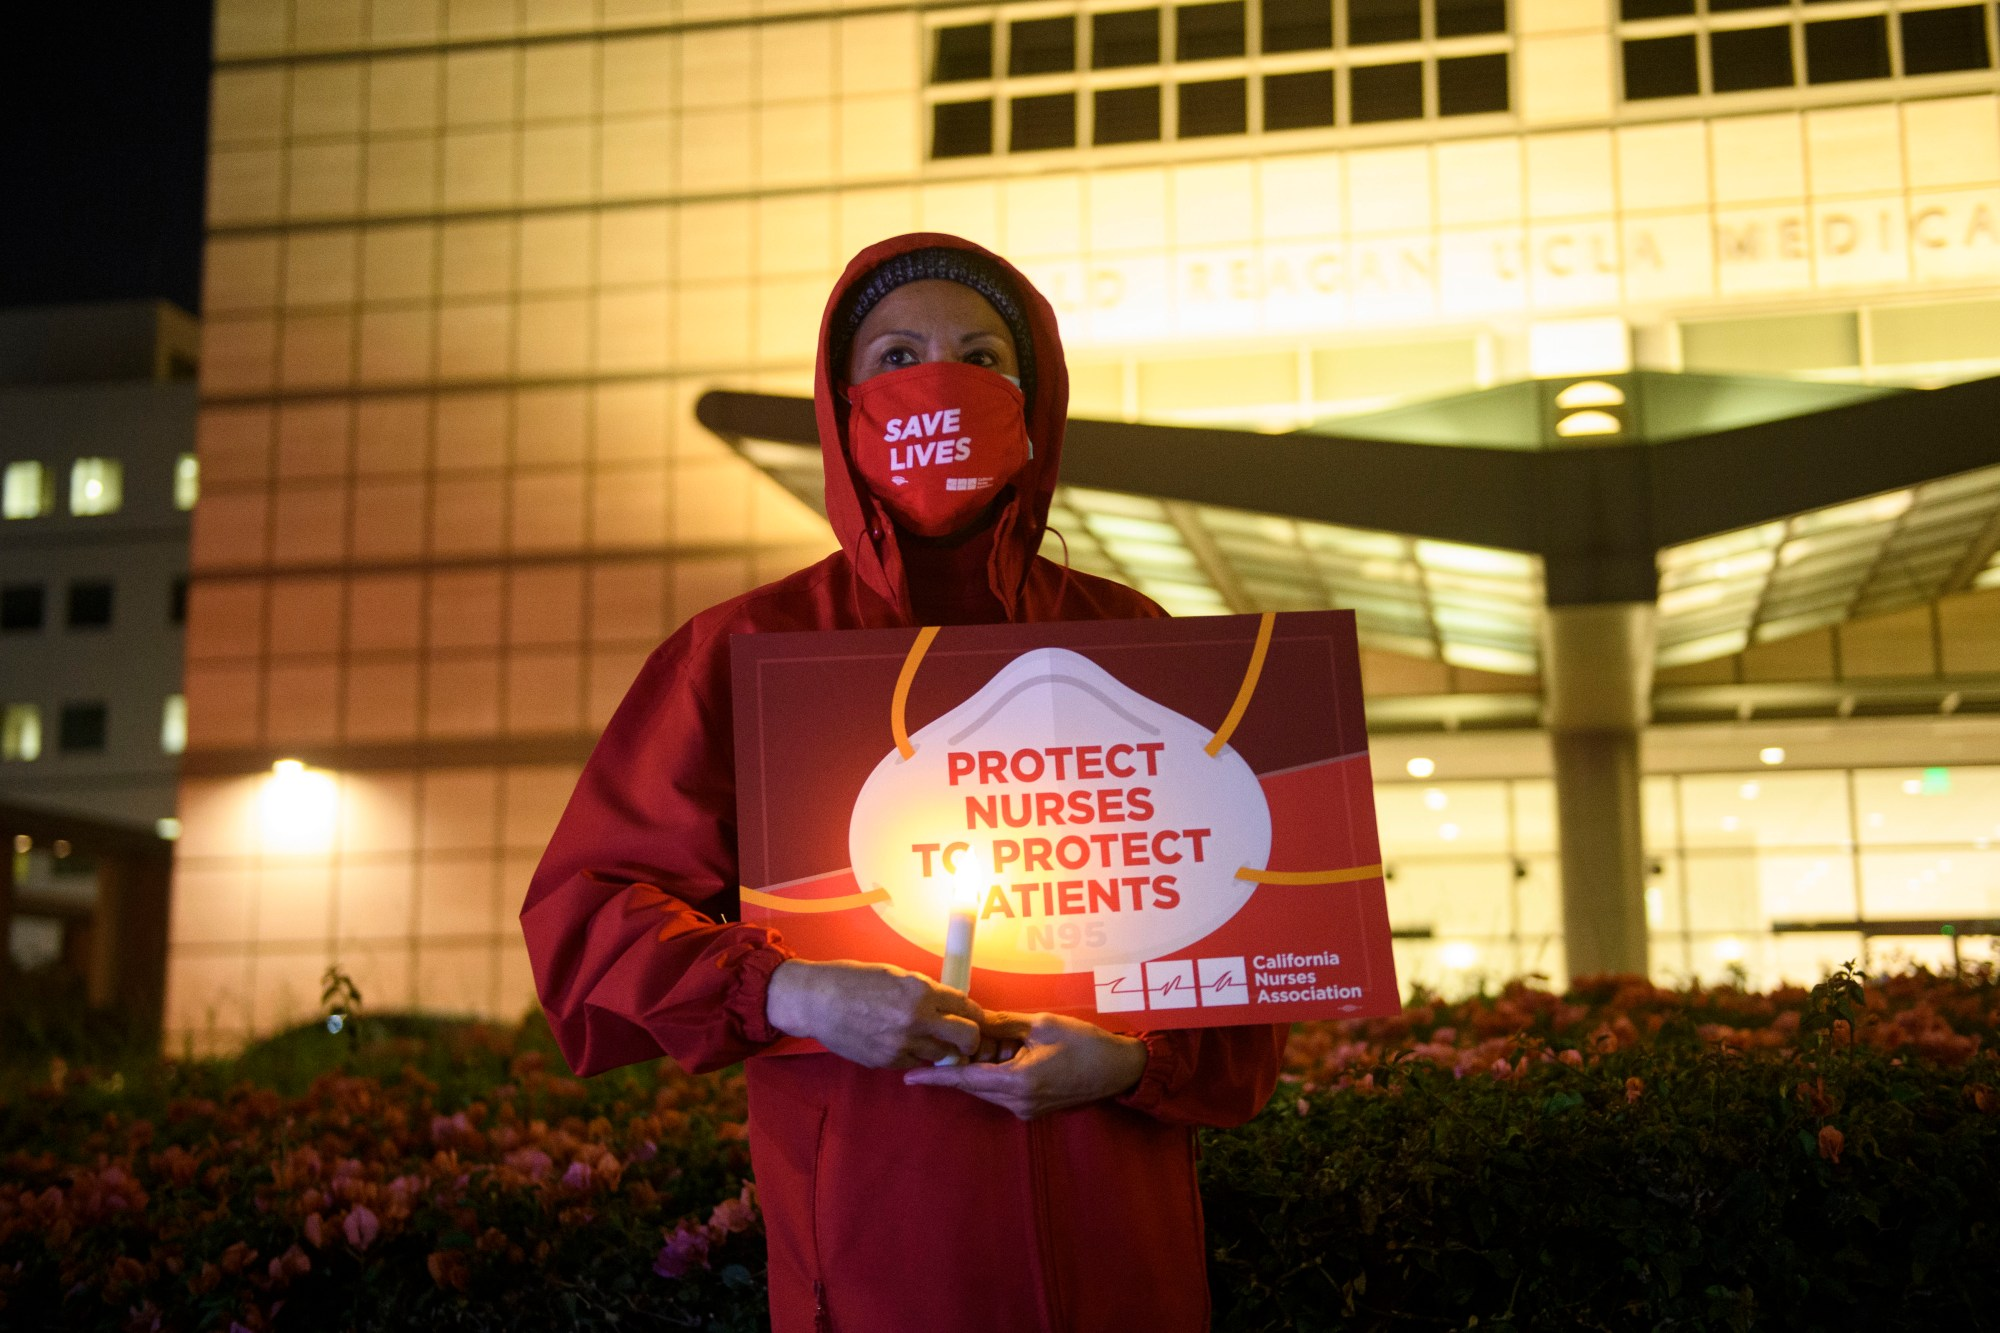 A nurse holds a candle during a vigil for health care workers who died from COVID-19 organized by California Nurses United outside of UCLA Medical Center in Los Angeles. (PATRICK T. FALLON/AFP via Getty Images)